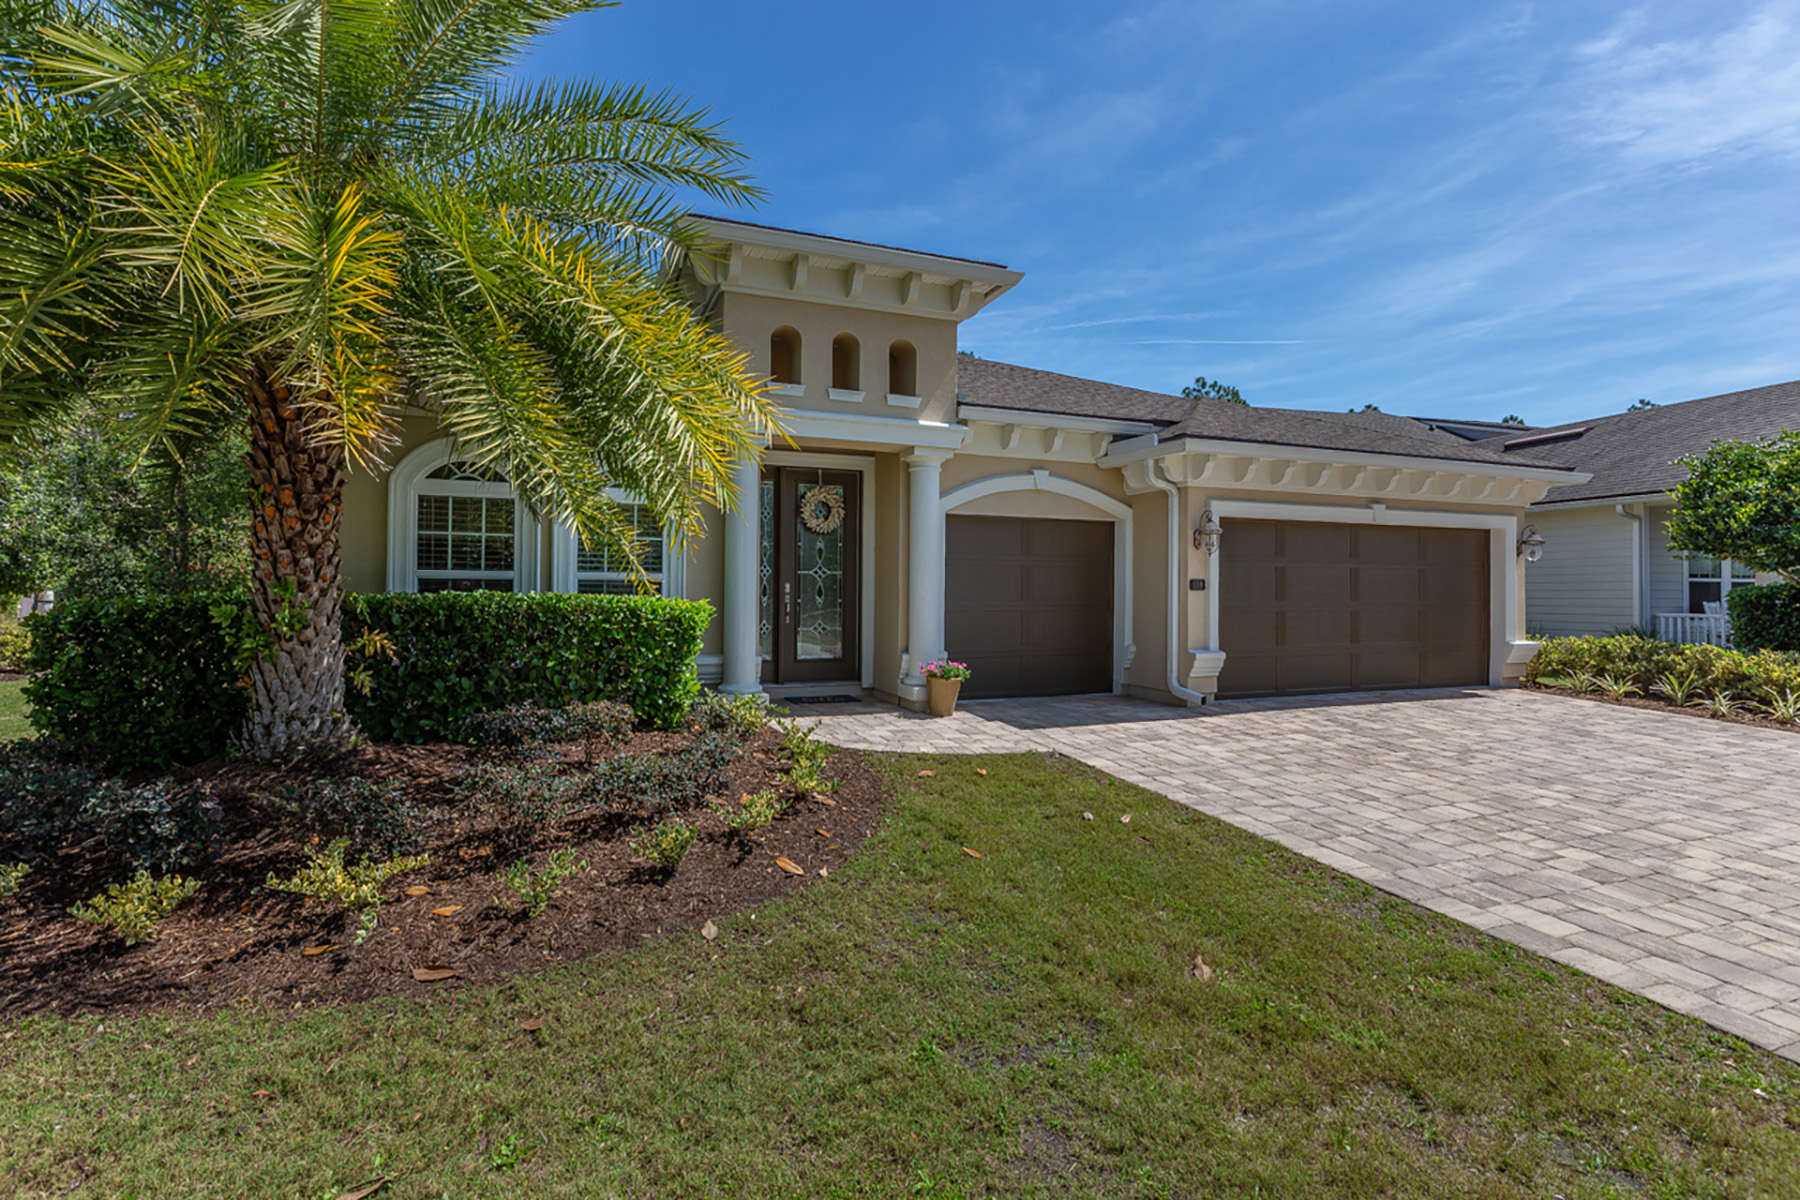 Single Family Homes for Sale at 159 Portsmouth Bay Ponte Vedra, Florida 32081 United States